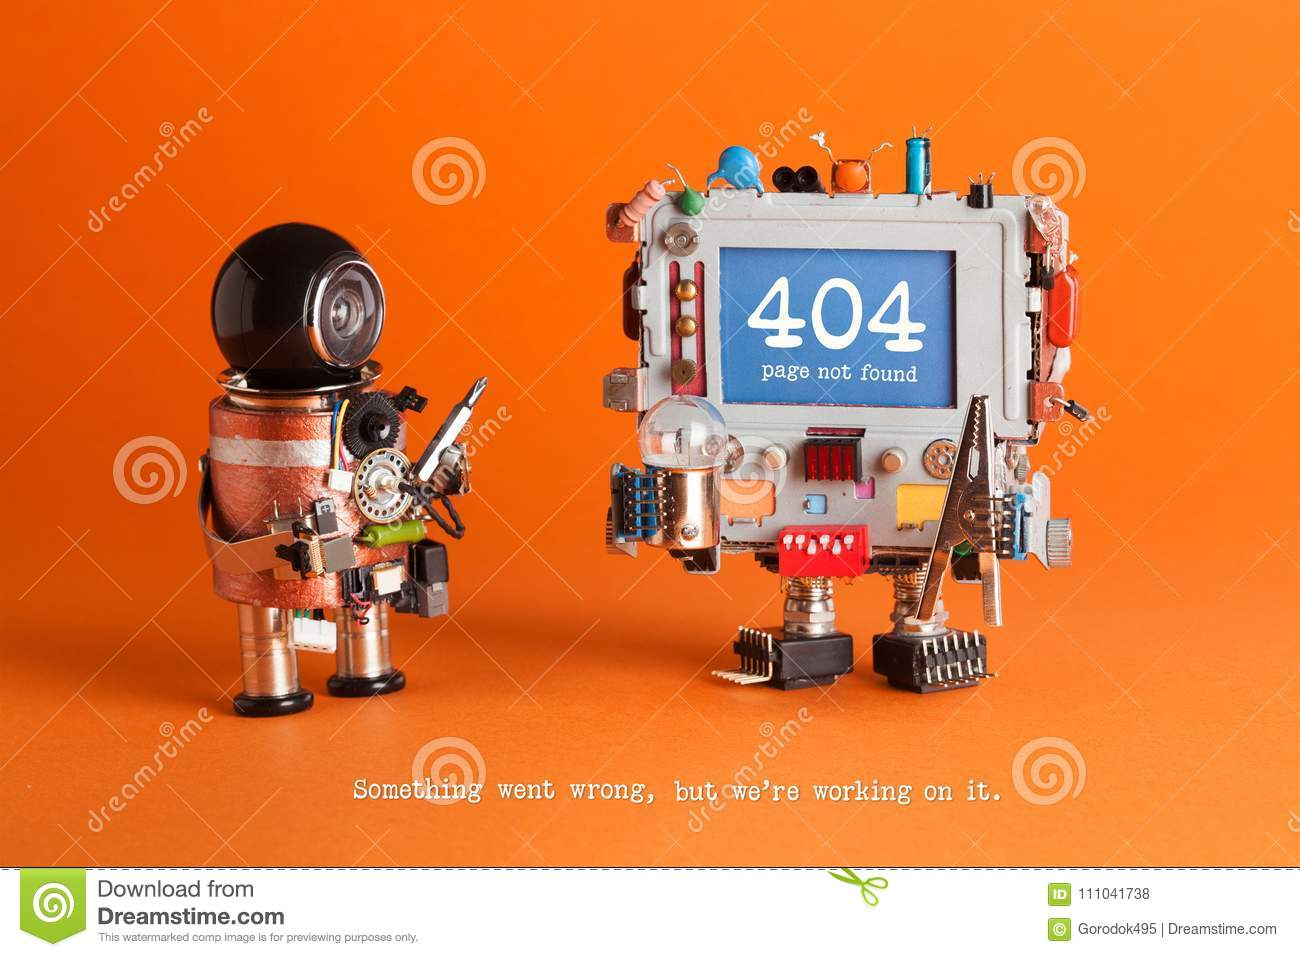 404 error page not found. Serviceman robot with driver, robotic computer warning message on blue screen. Orange